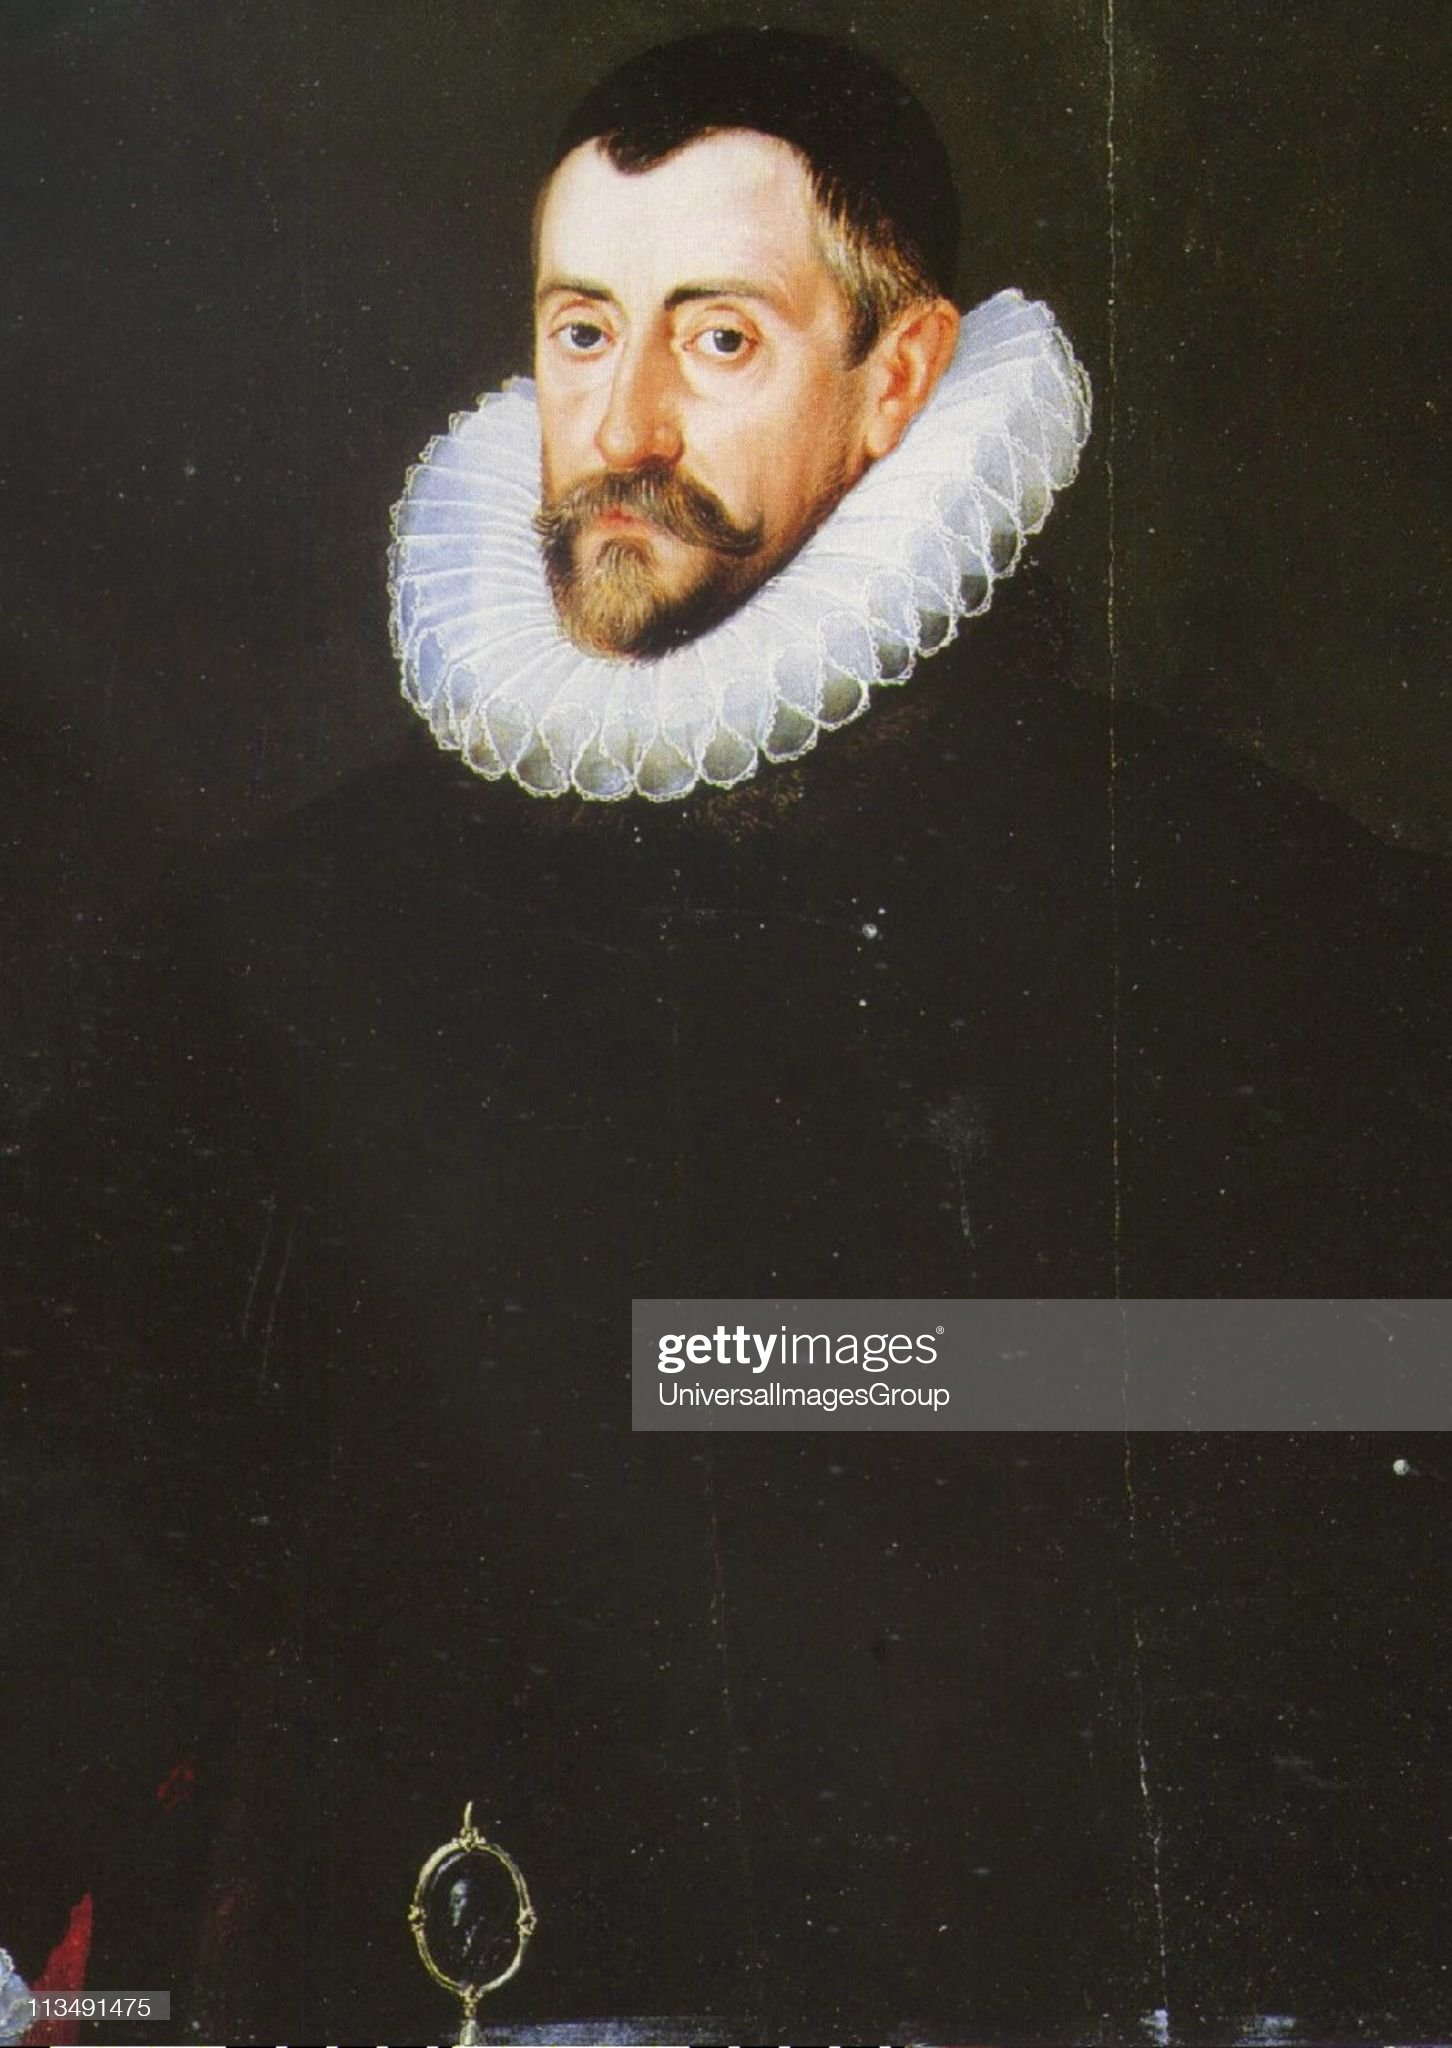 Francis Walsingham (c1532-1590) 'spymaster' to Elizabeth I. He is frequently cited as one of the earliest practitioners of modern intelligence both for espionage and internal security. His network penetrated the heart of Spanish military preparation, gath... : News Photo